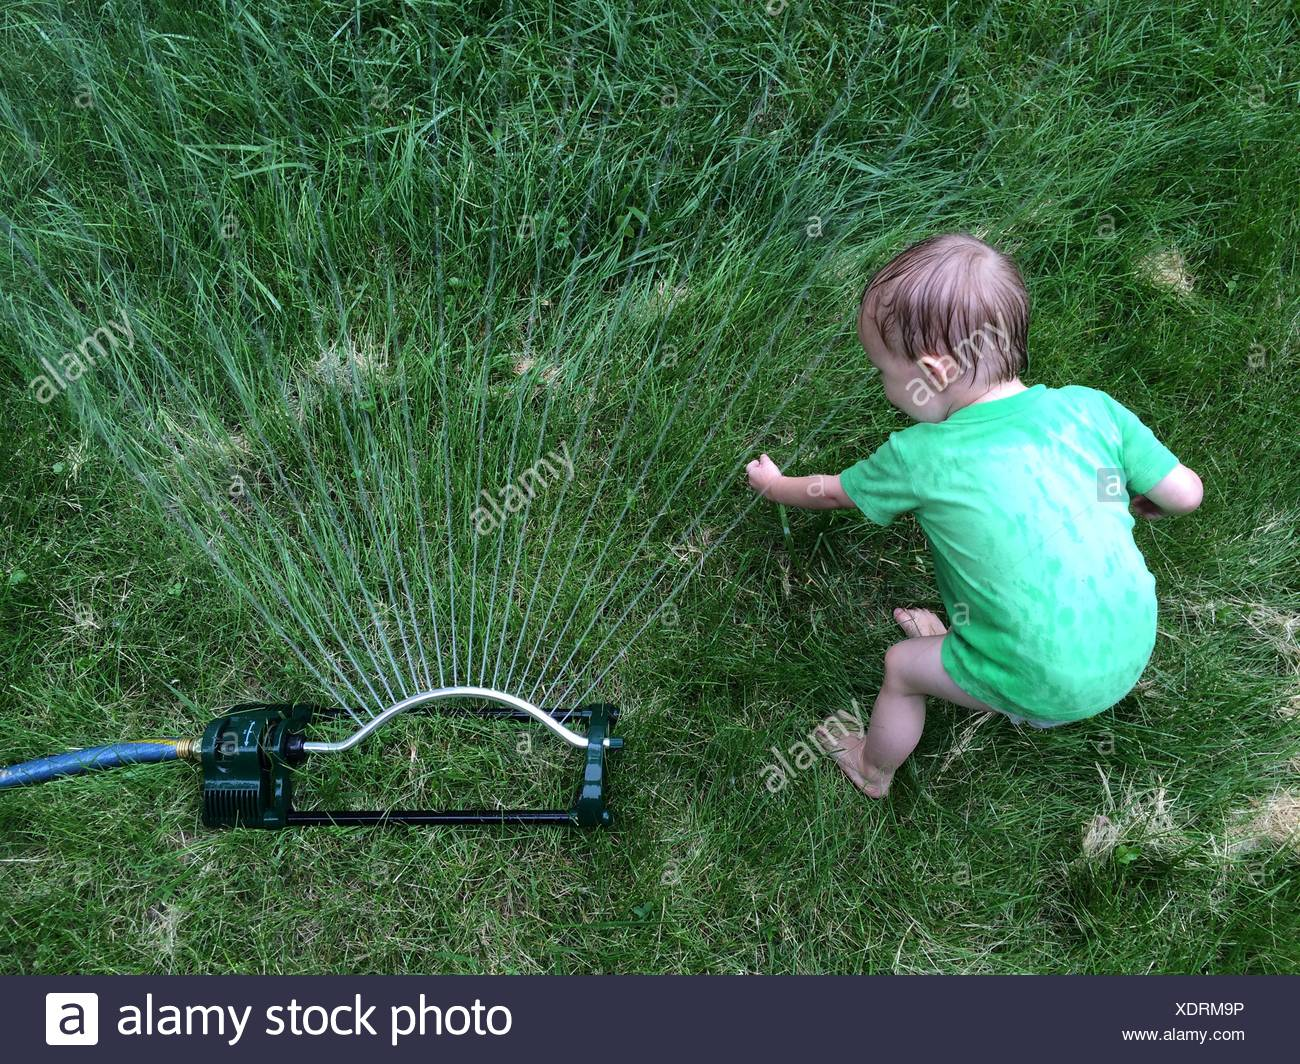 High Angle View Of Child Playing By Sprinkler On Grassy Field - Stock Image